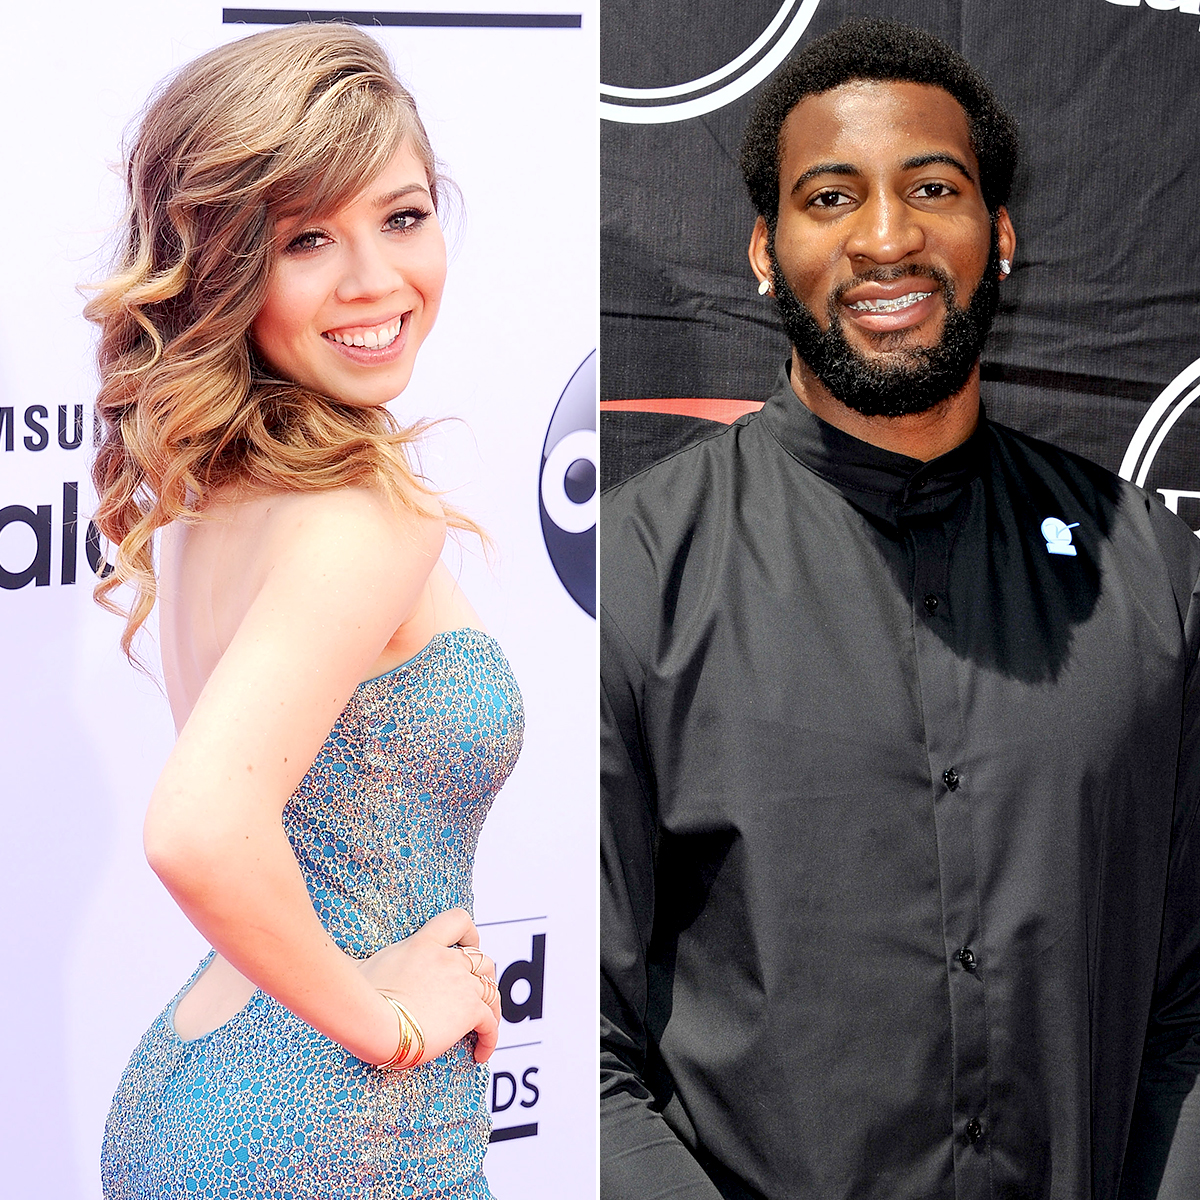 "jennette-mccurdy-Andre-Drummond - The Sam & Cat actress started dating the Detroit Pistons player in the fall of 2013 after he gave her several shoutouts on Twitter throughout the year. ""@DRE_DRUMMOND_ I wanna watch you play,"" she finally tweeted in August, to which he replied, ""@jennettemccurdy ill let you know when I play in LA!"""